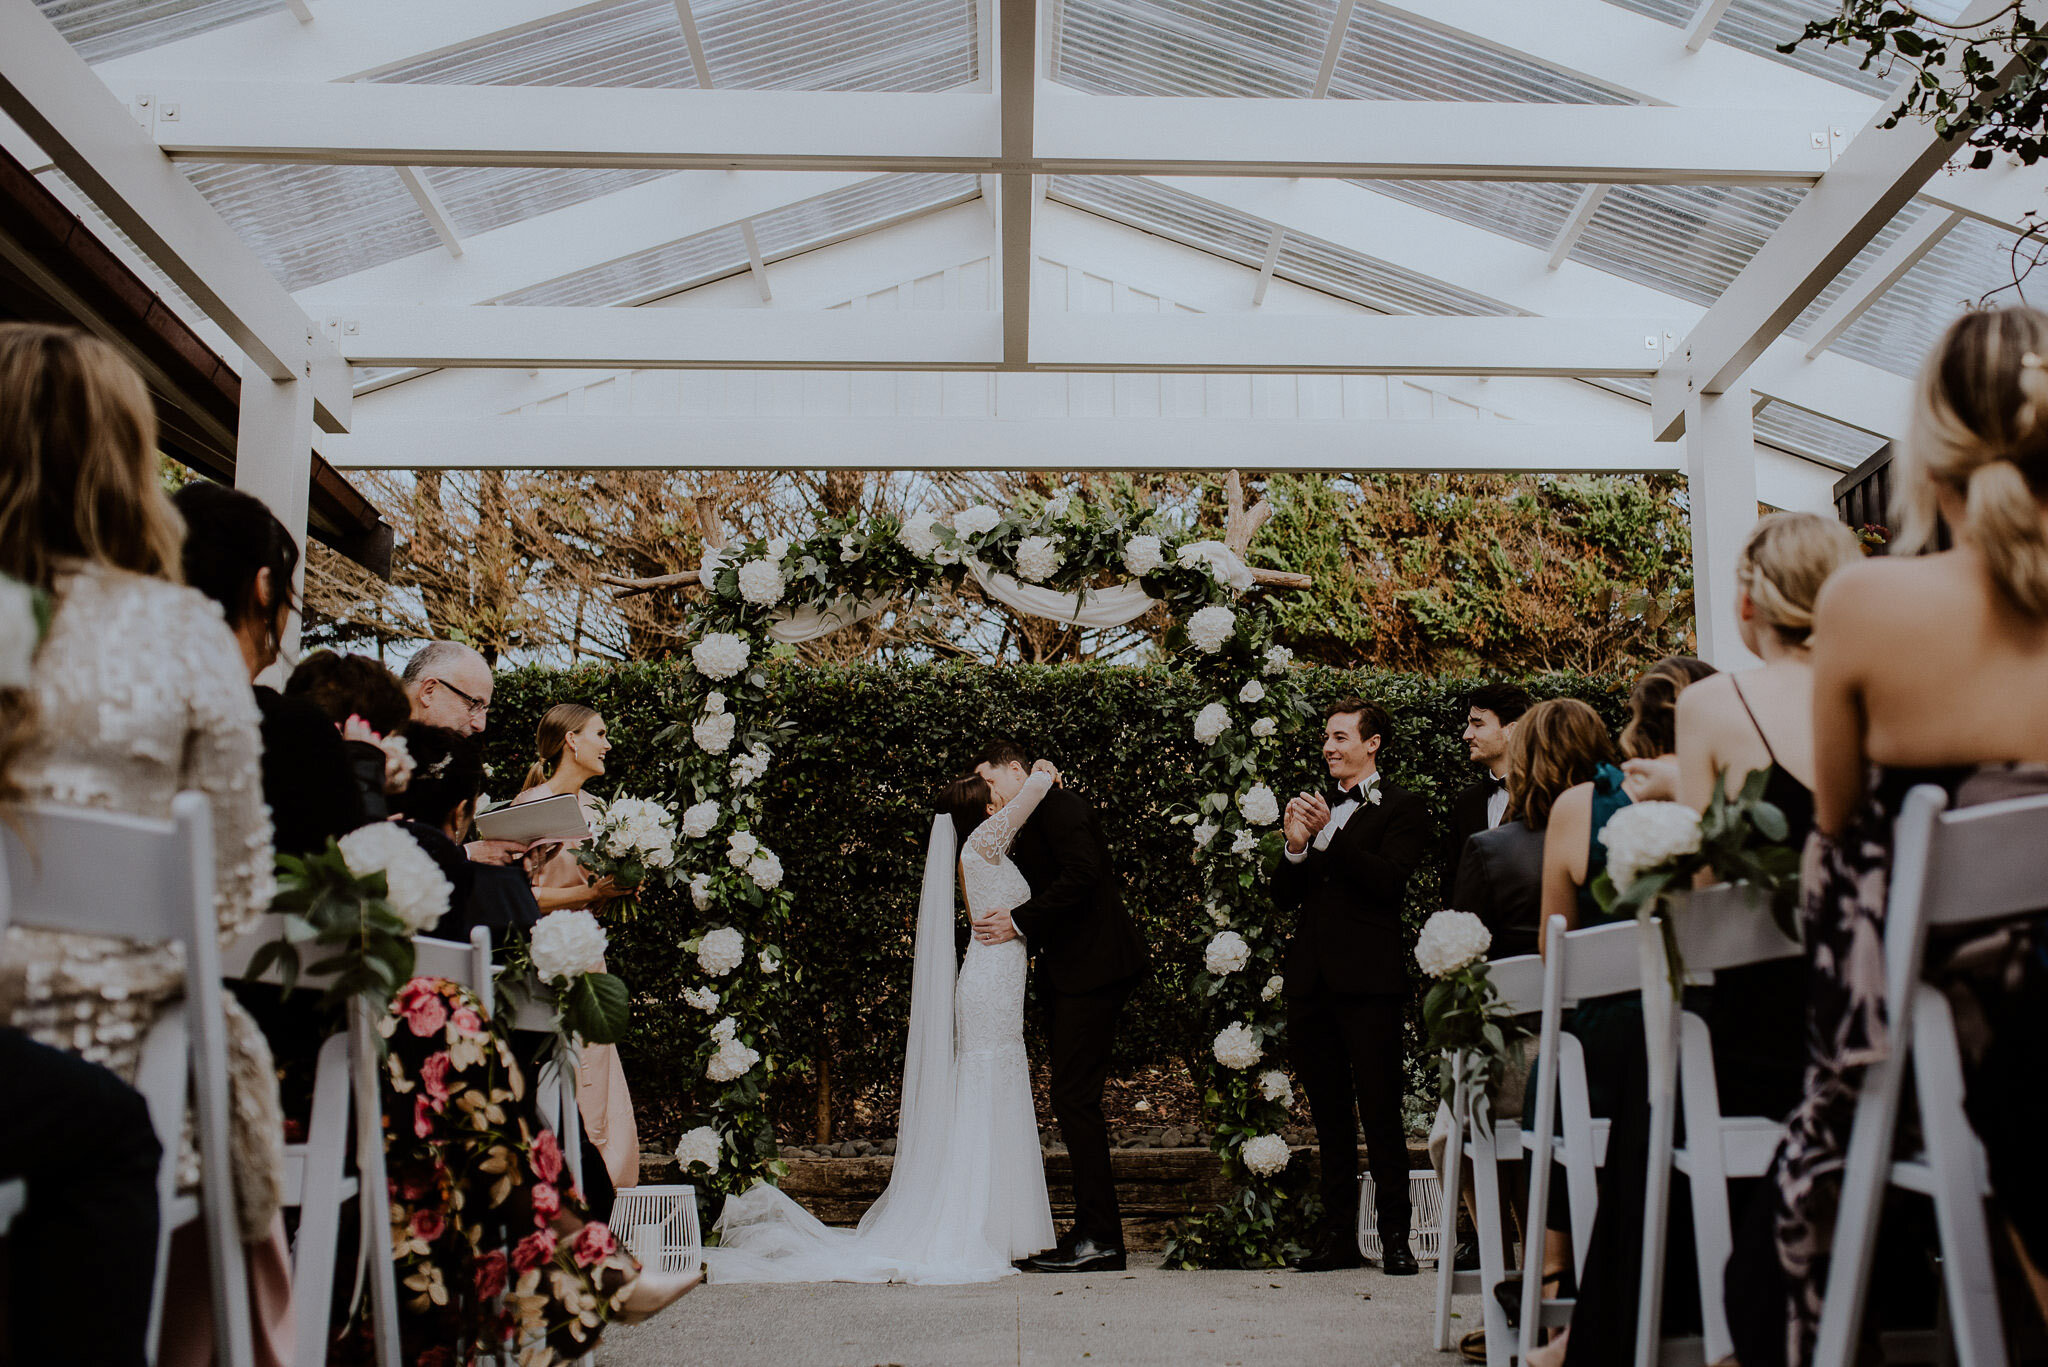 Mudbrick indoor ceremony option